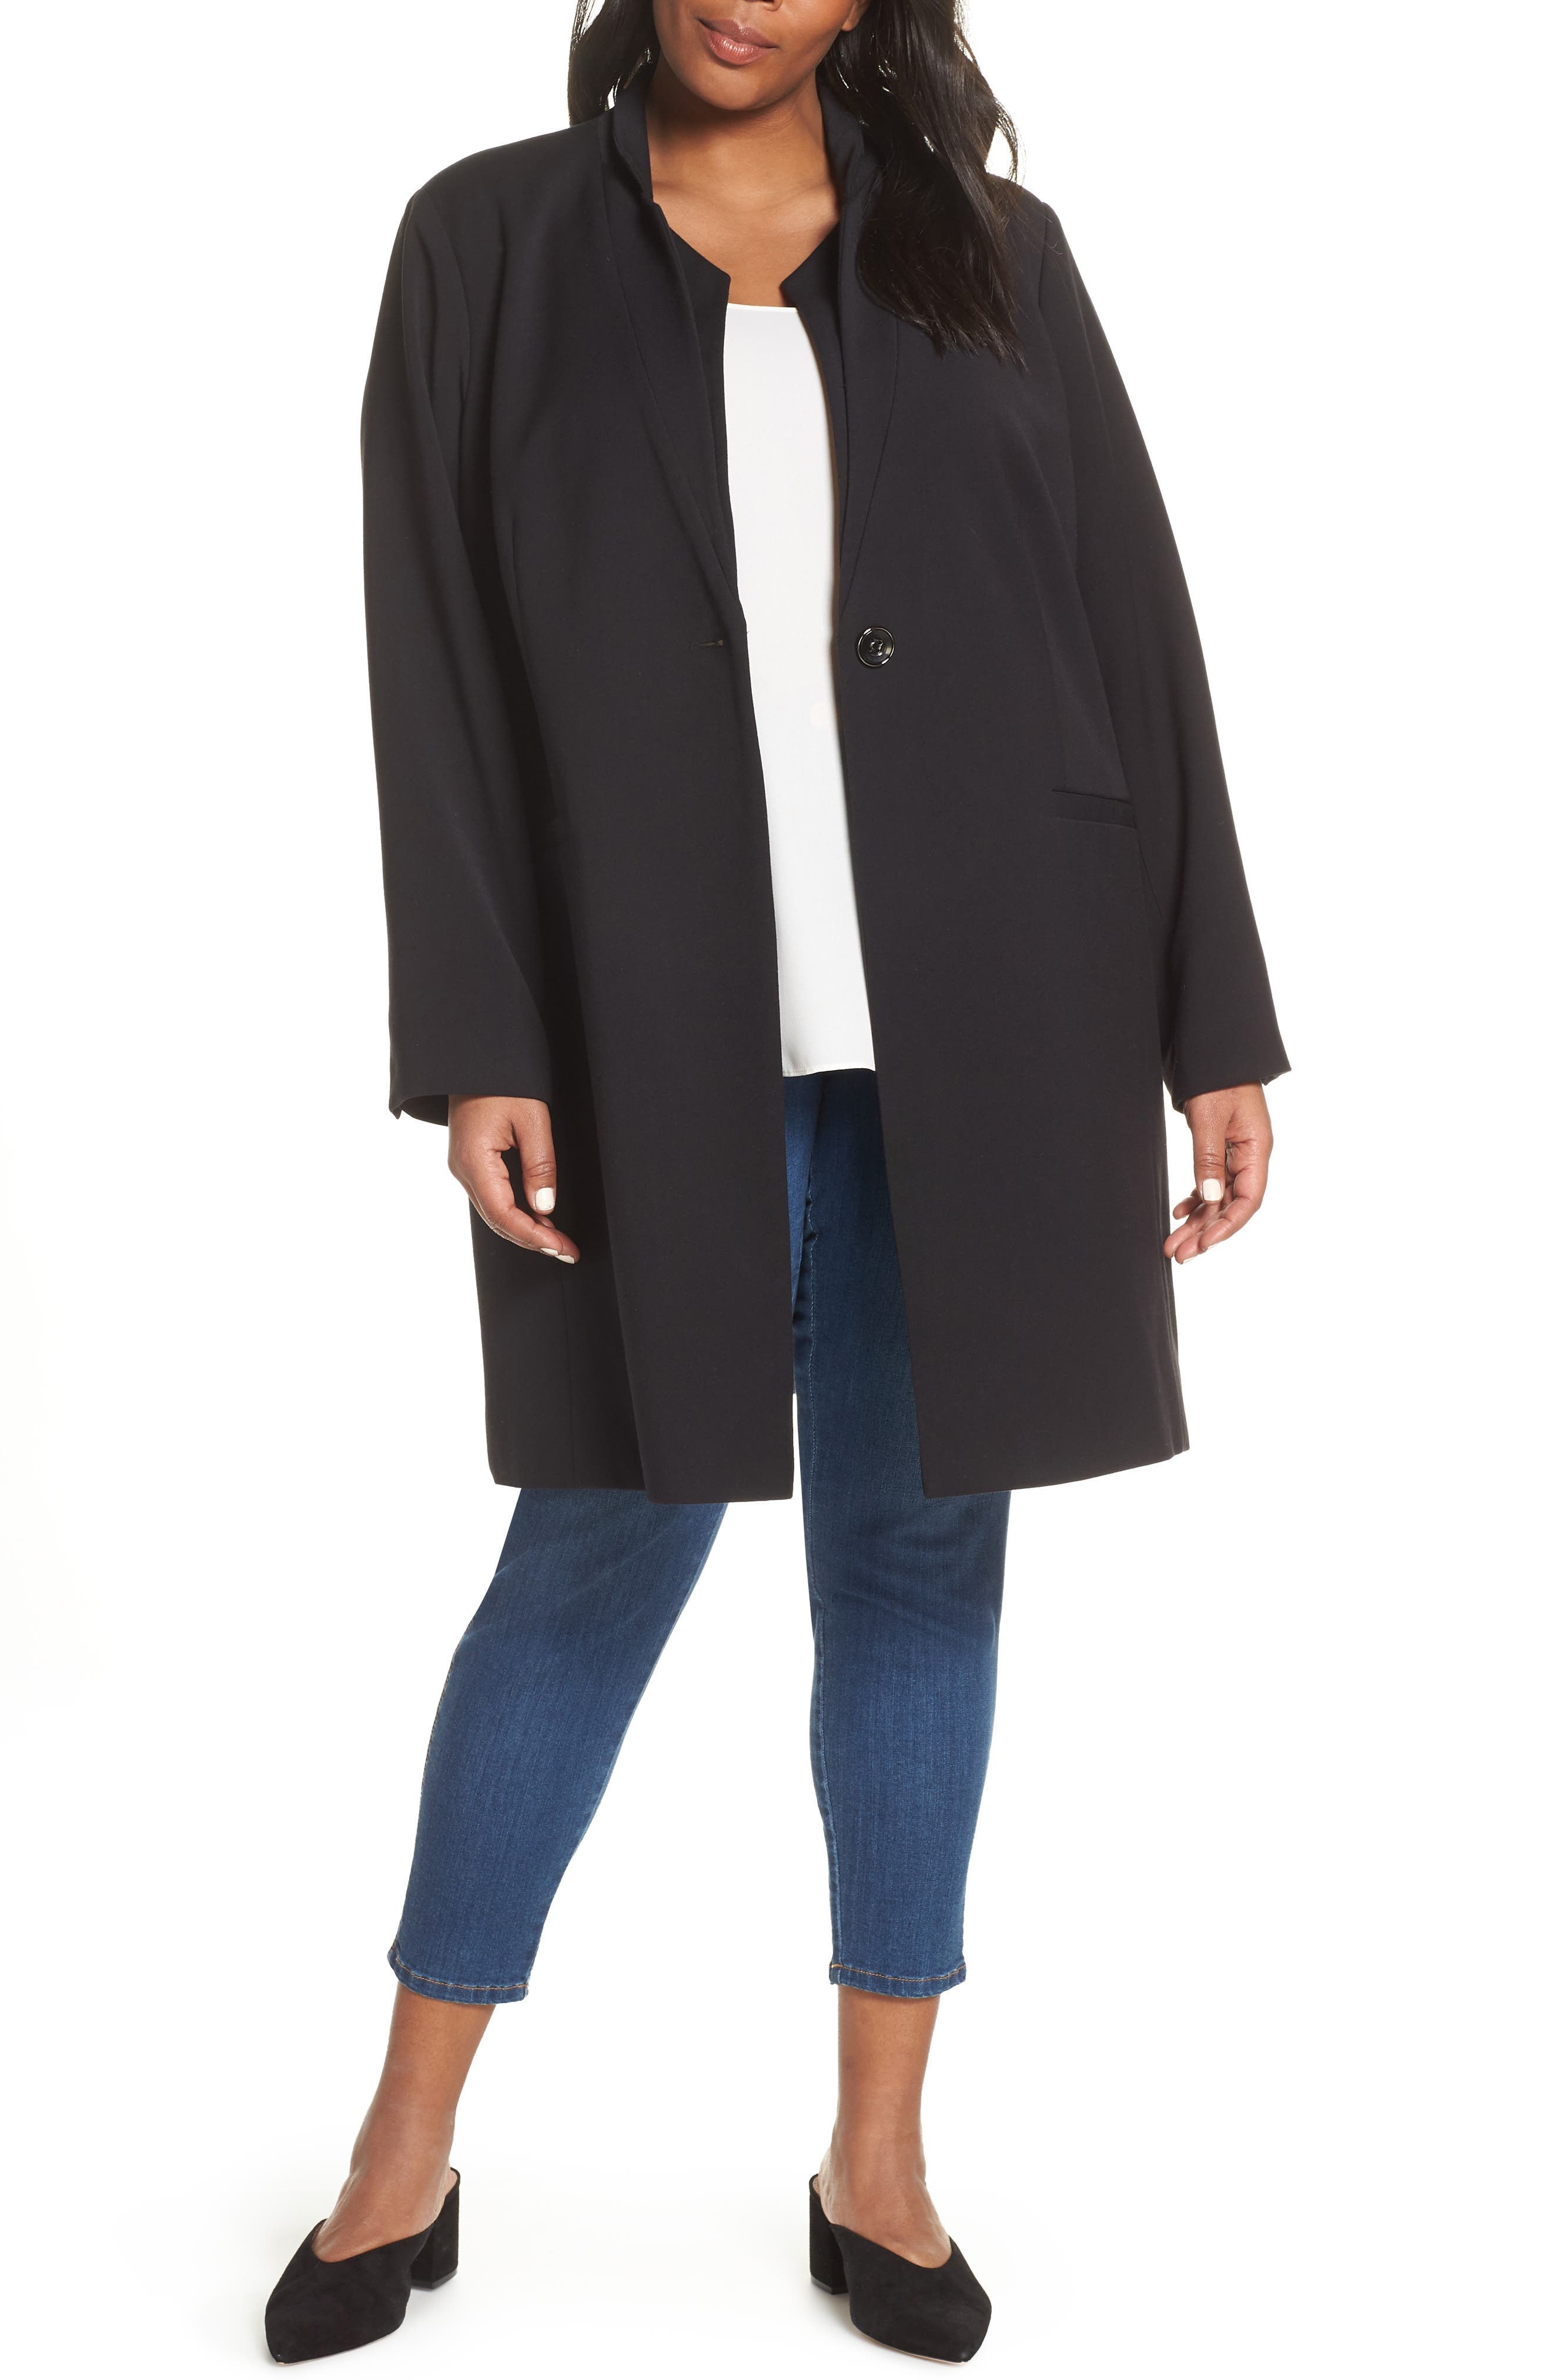 KENNETH COLE NEW YORK,                             Inverted Collar Ponte Jacket,                             Main thumbnail 1, color,                             BLACK